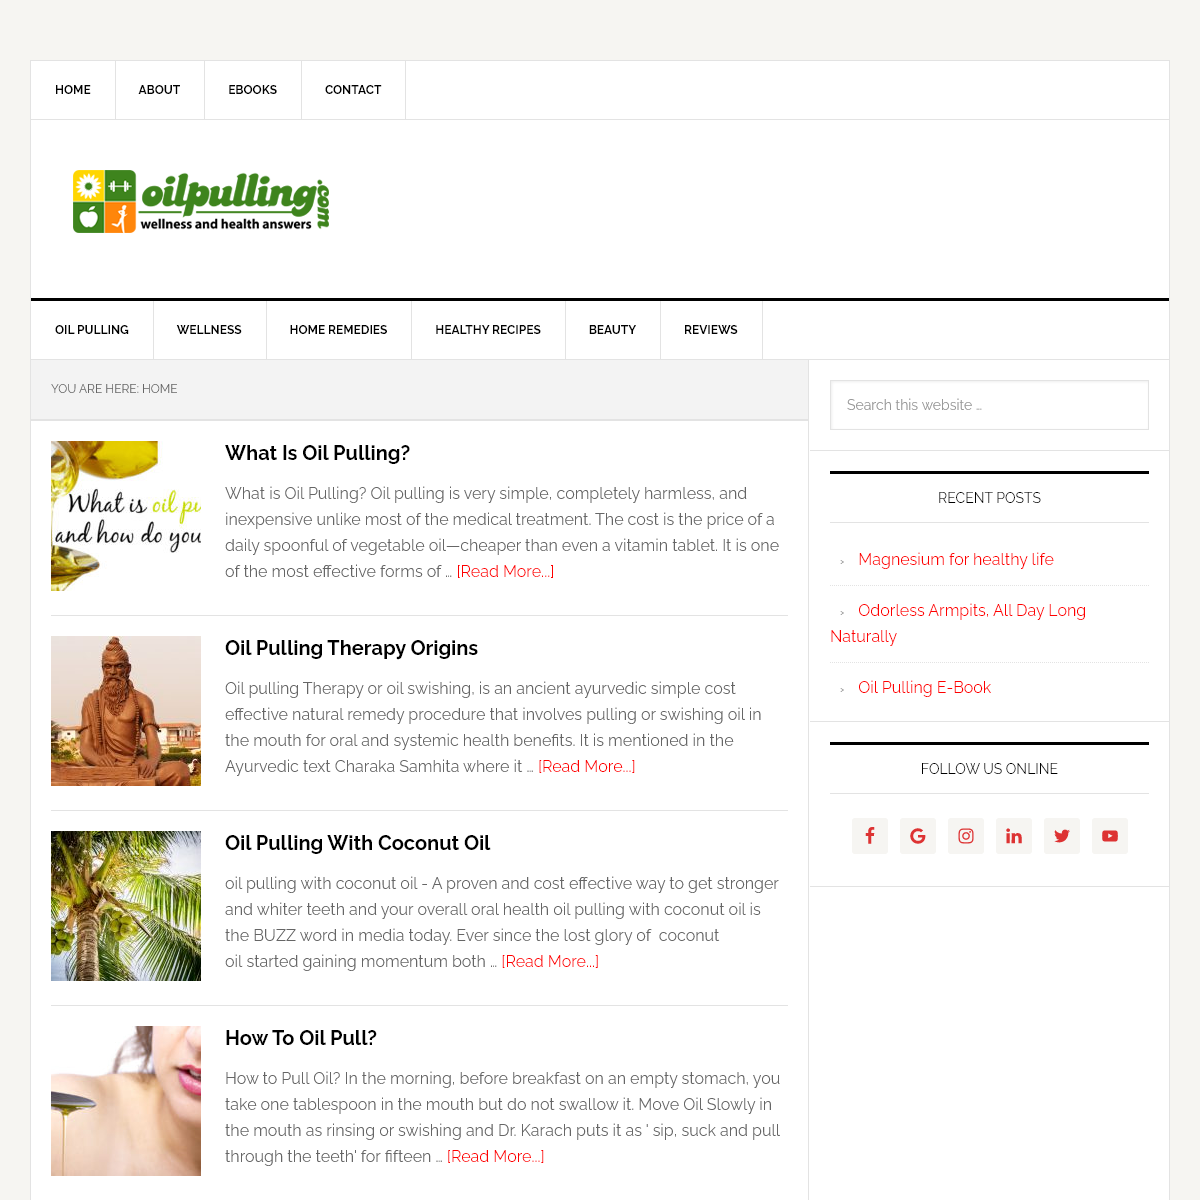 Oil Pulling, Wellness and Health Answers - Wellness and Health News, Original oil pulling site since 2004